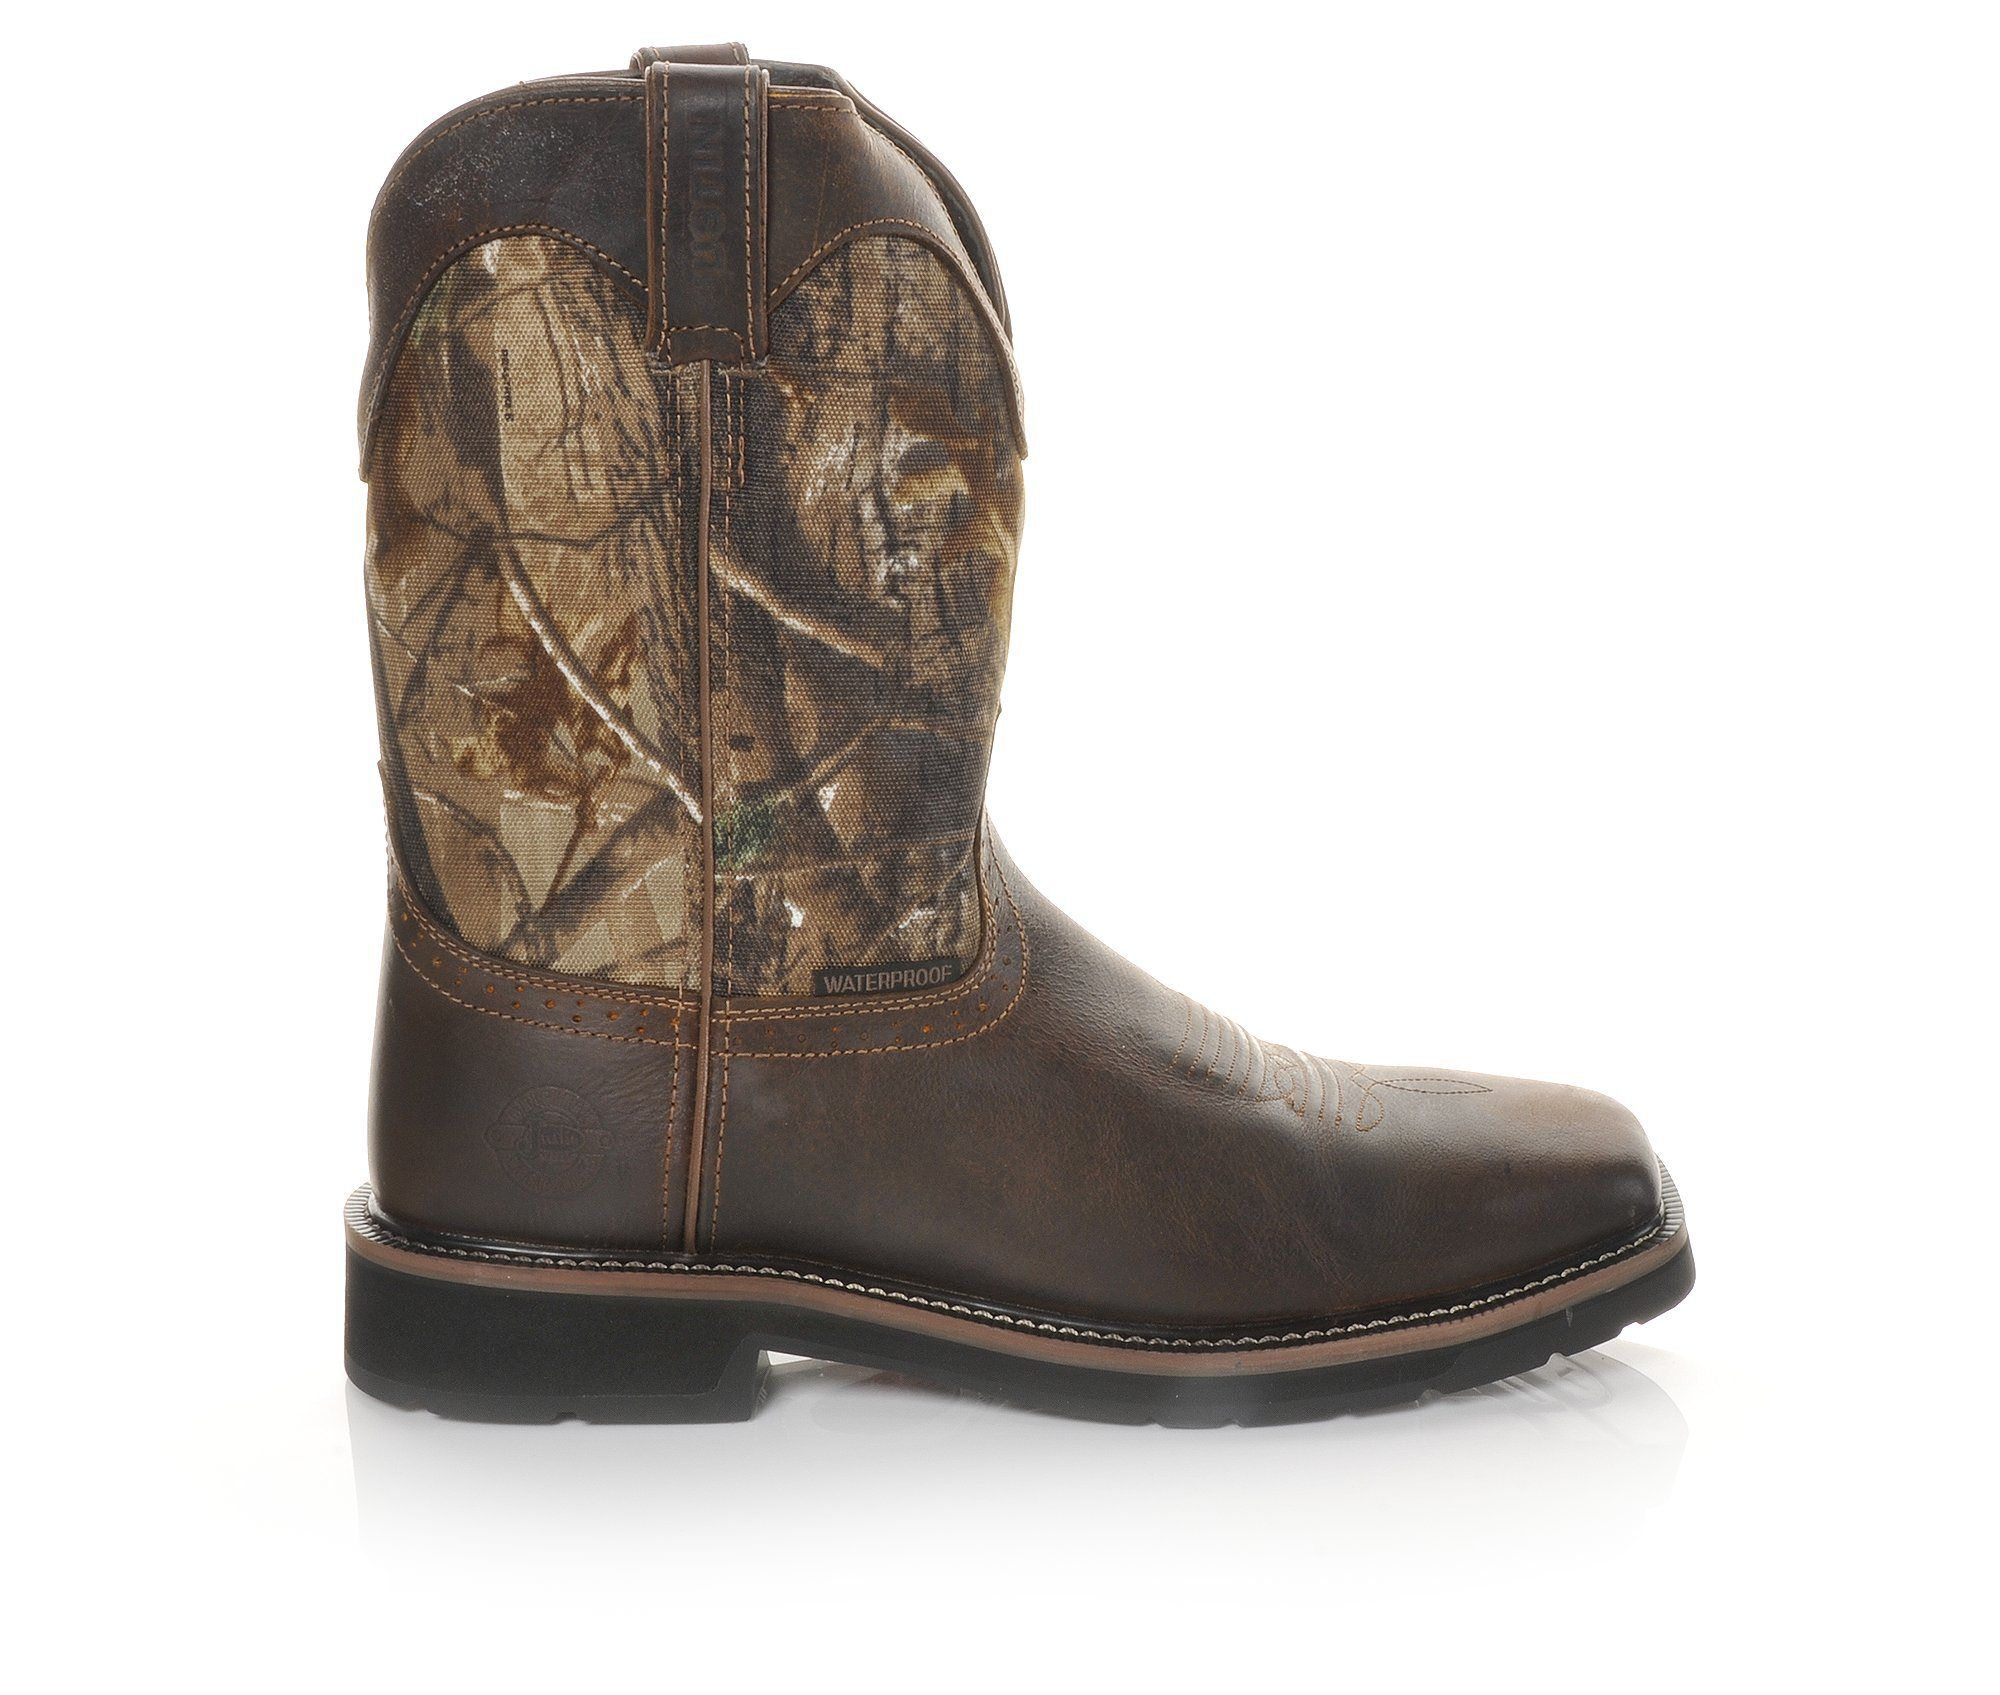 Men's Justin Boots WK4676 Stampede Work Boots hot sale for sale 9HxMCZY